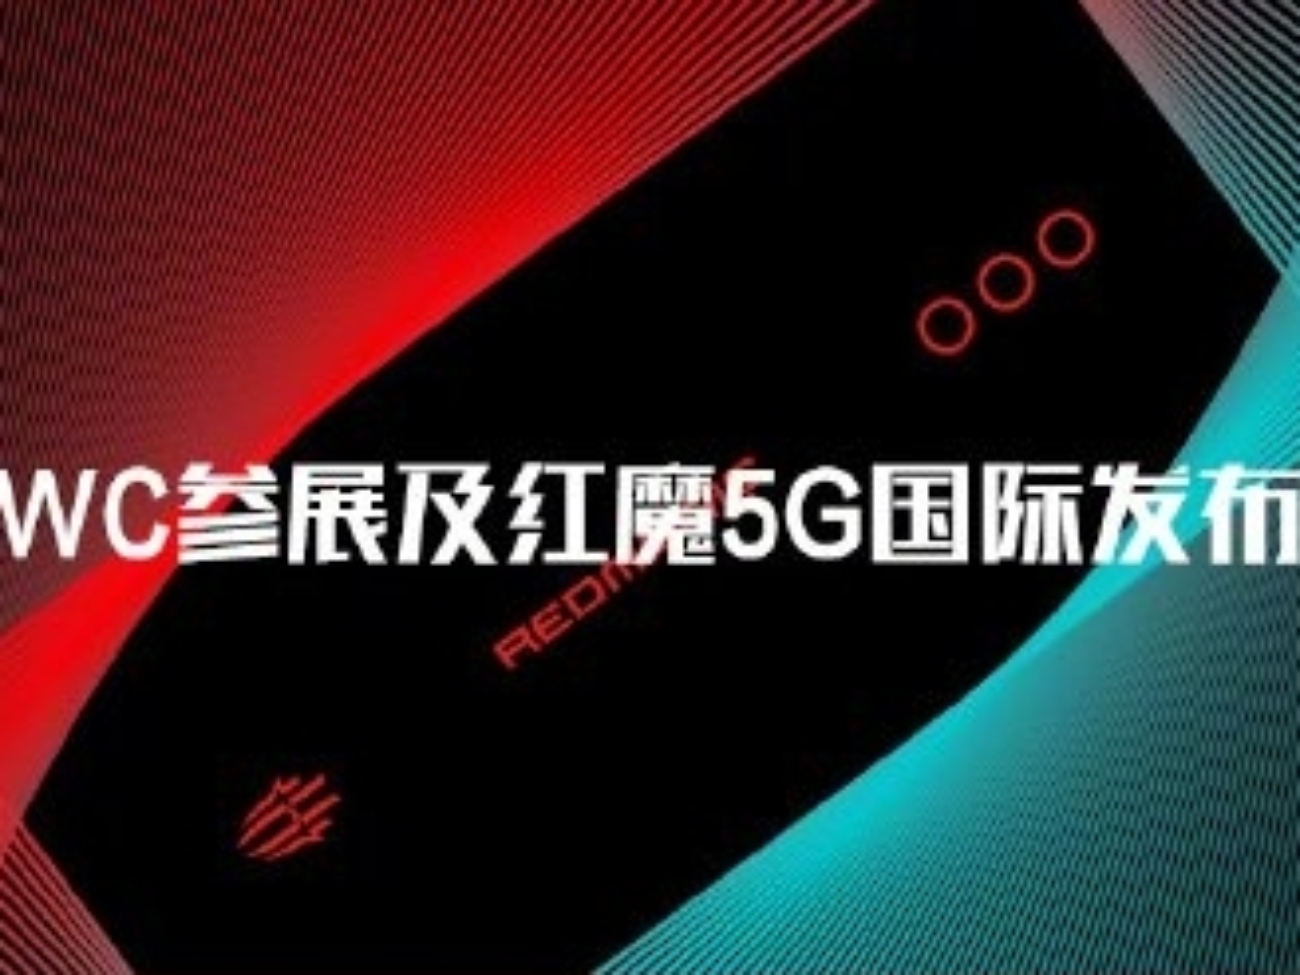 Red-Magic-5G-launch-canceled-0